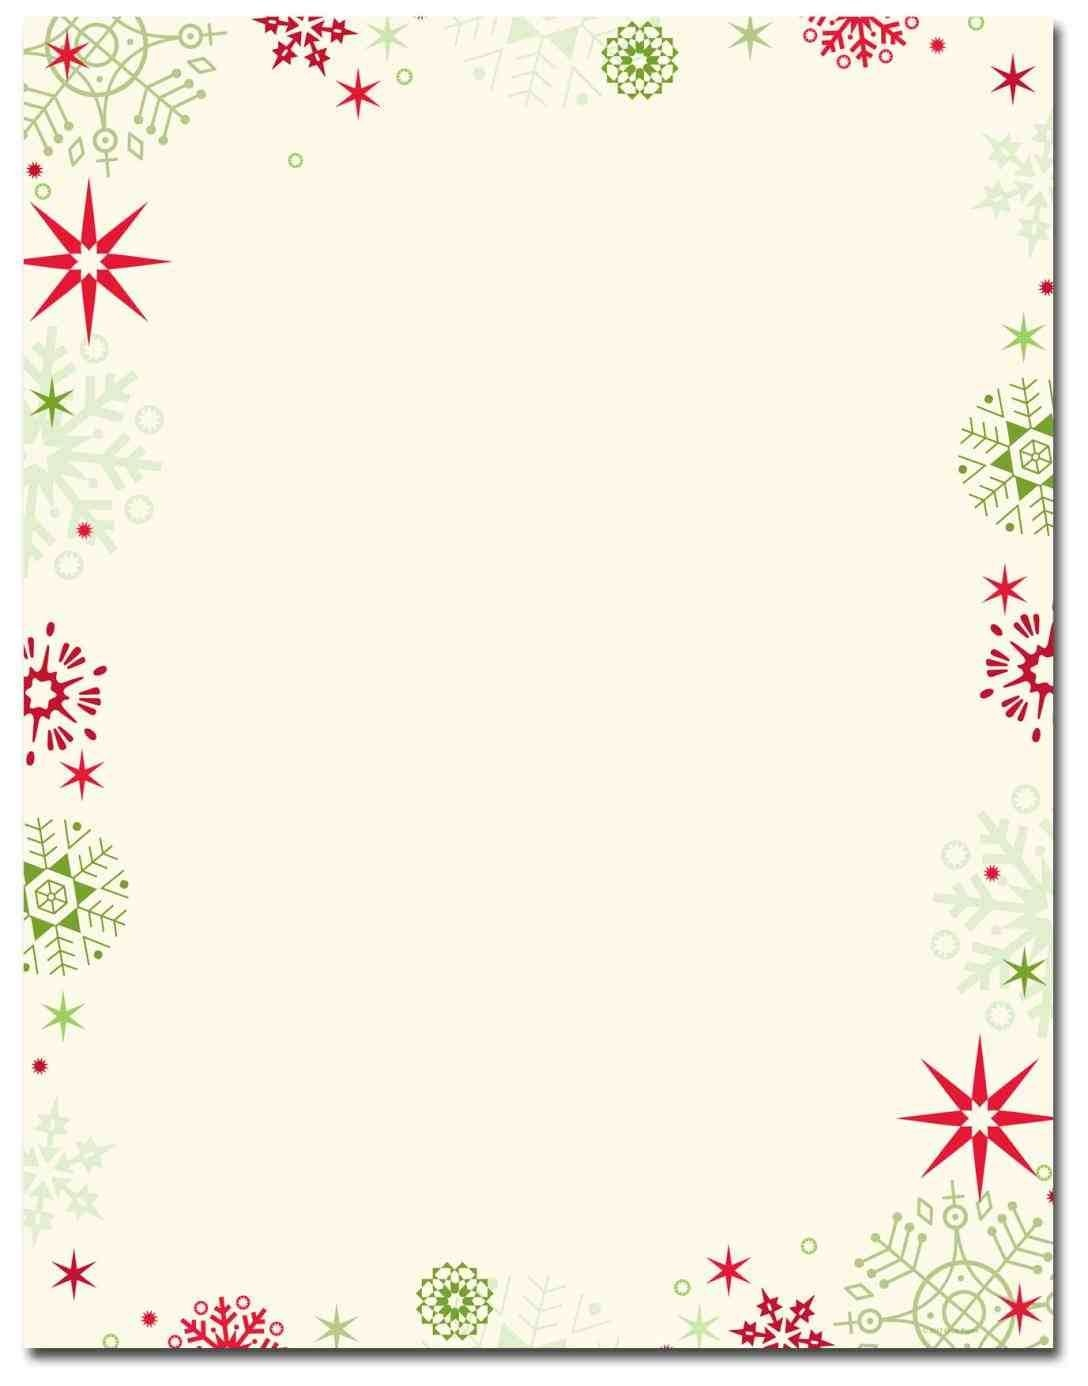 photograph regarding Free Printable Stationary Borders called No cost Printable Xmas Letterhead Totally free Printable